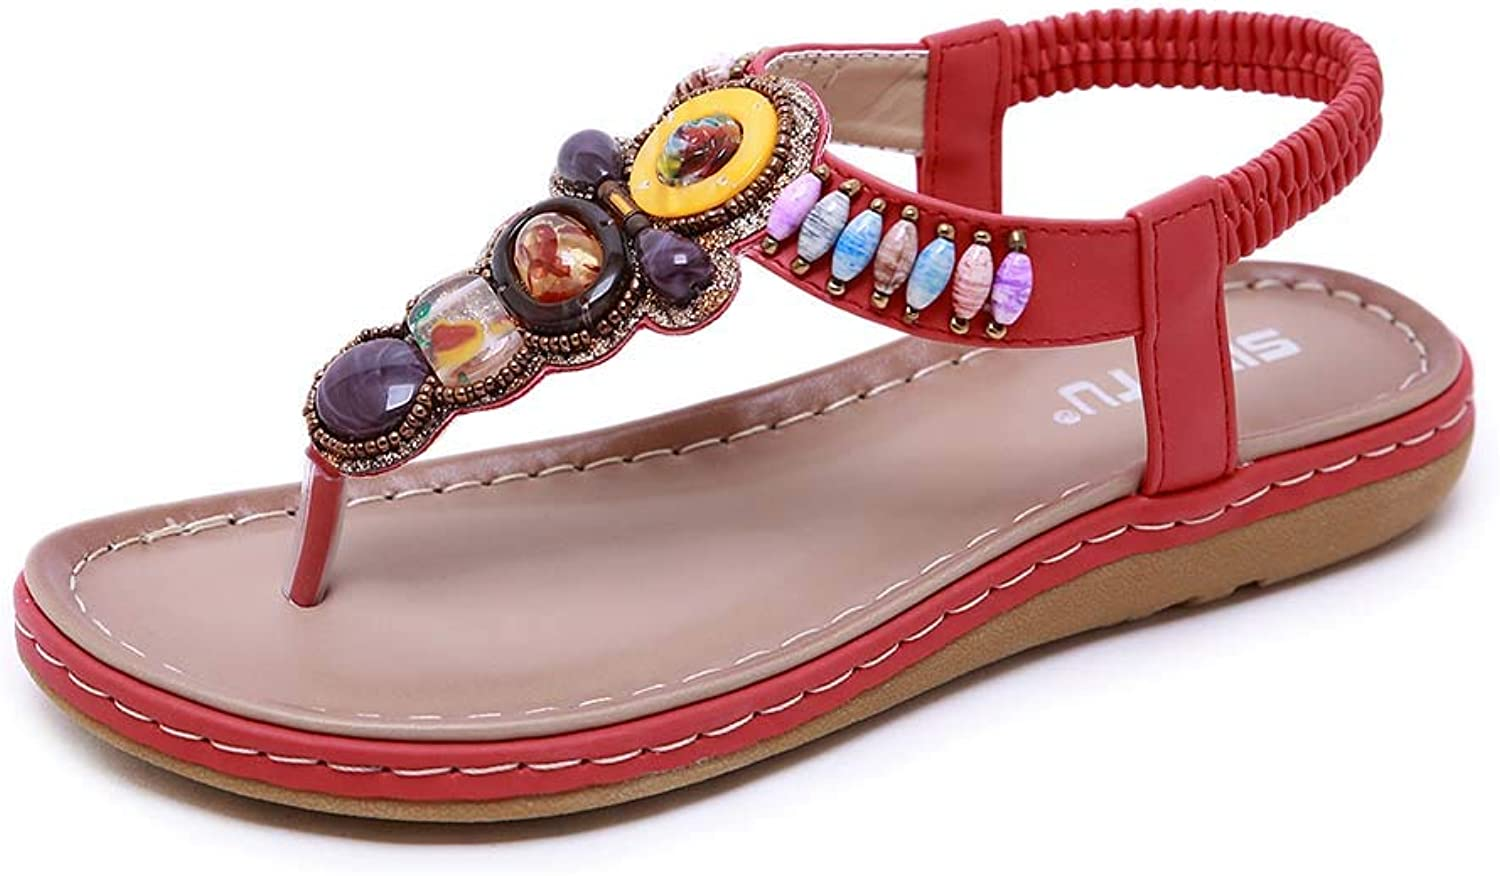 Women's Summer Elastic Sparkle Bohemian Beaded Ankle Walking T-Strap Clip Toe Beach Casual Sandals,Red,42